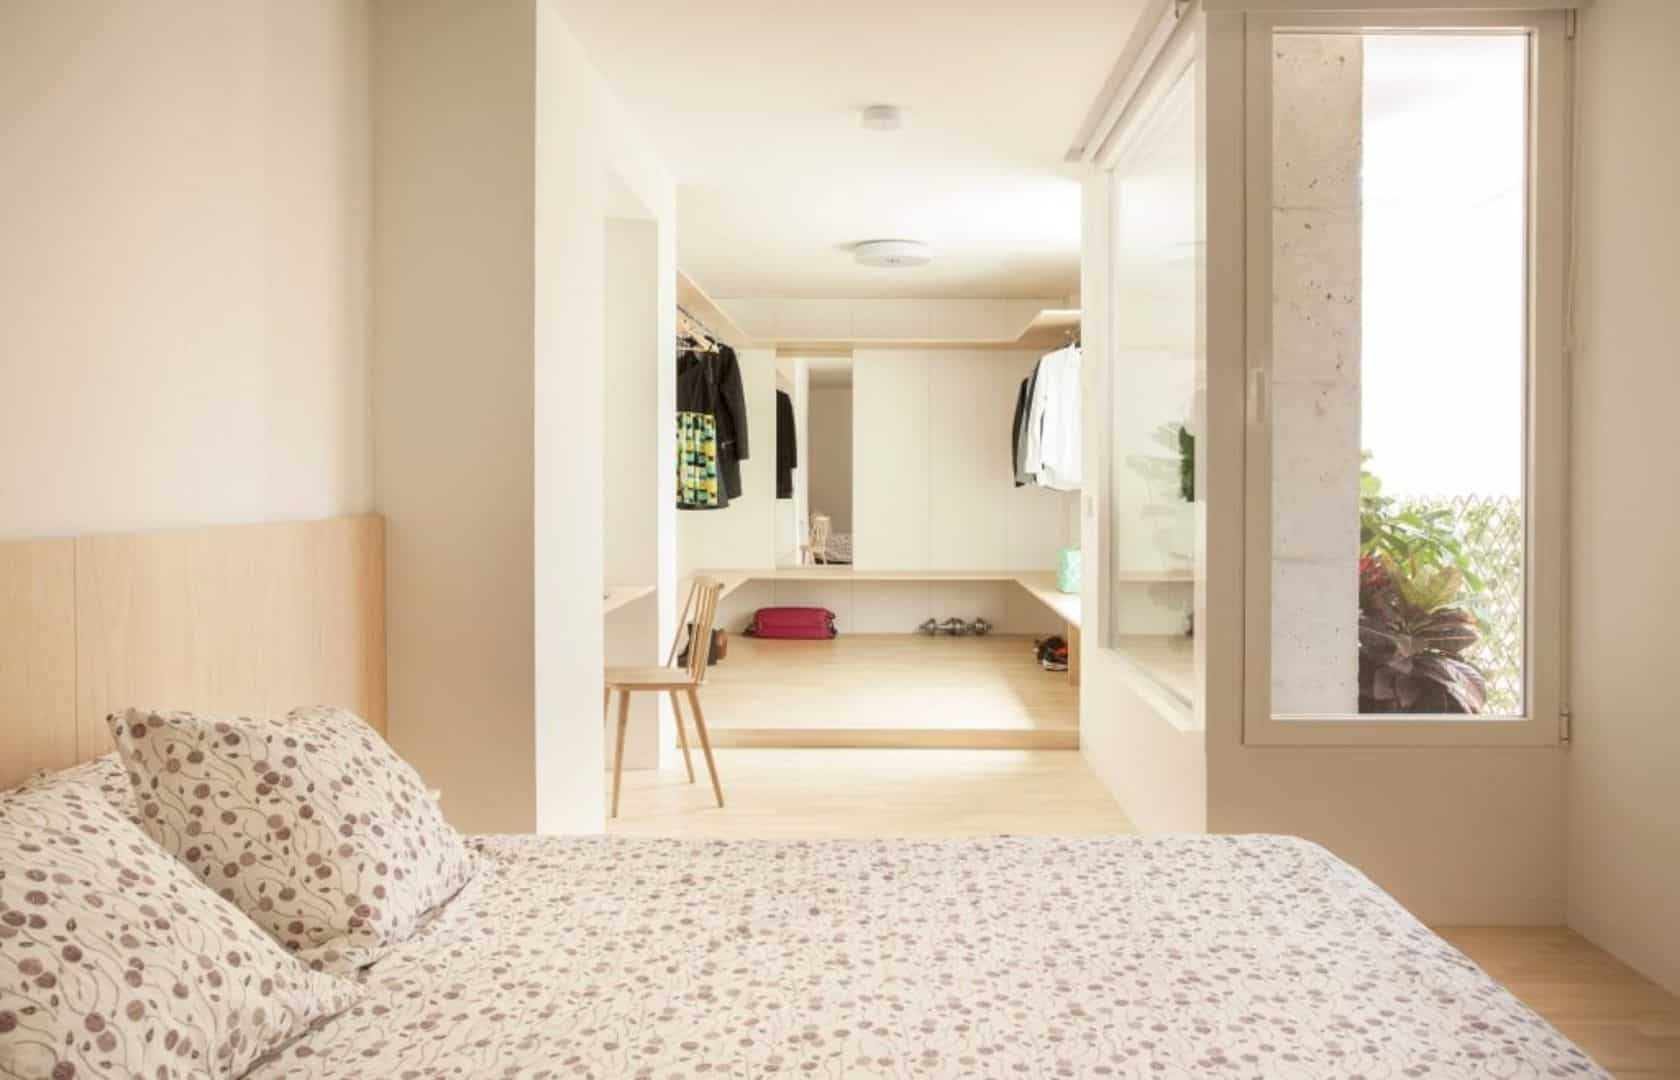 Alicante Apartment Renovation By Diego Lopez Fuster Arquitecture 3